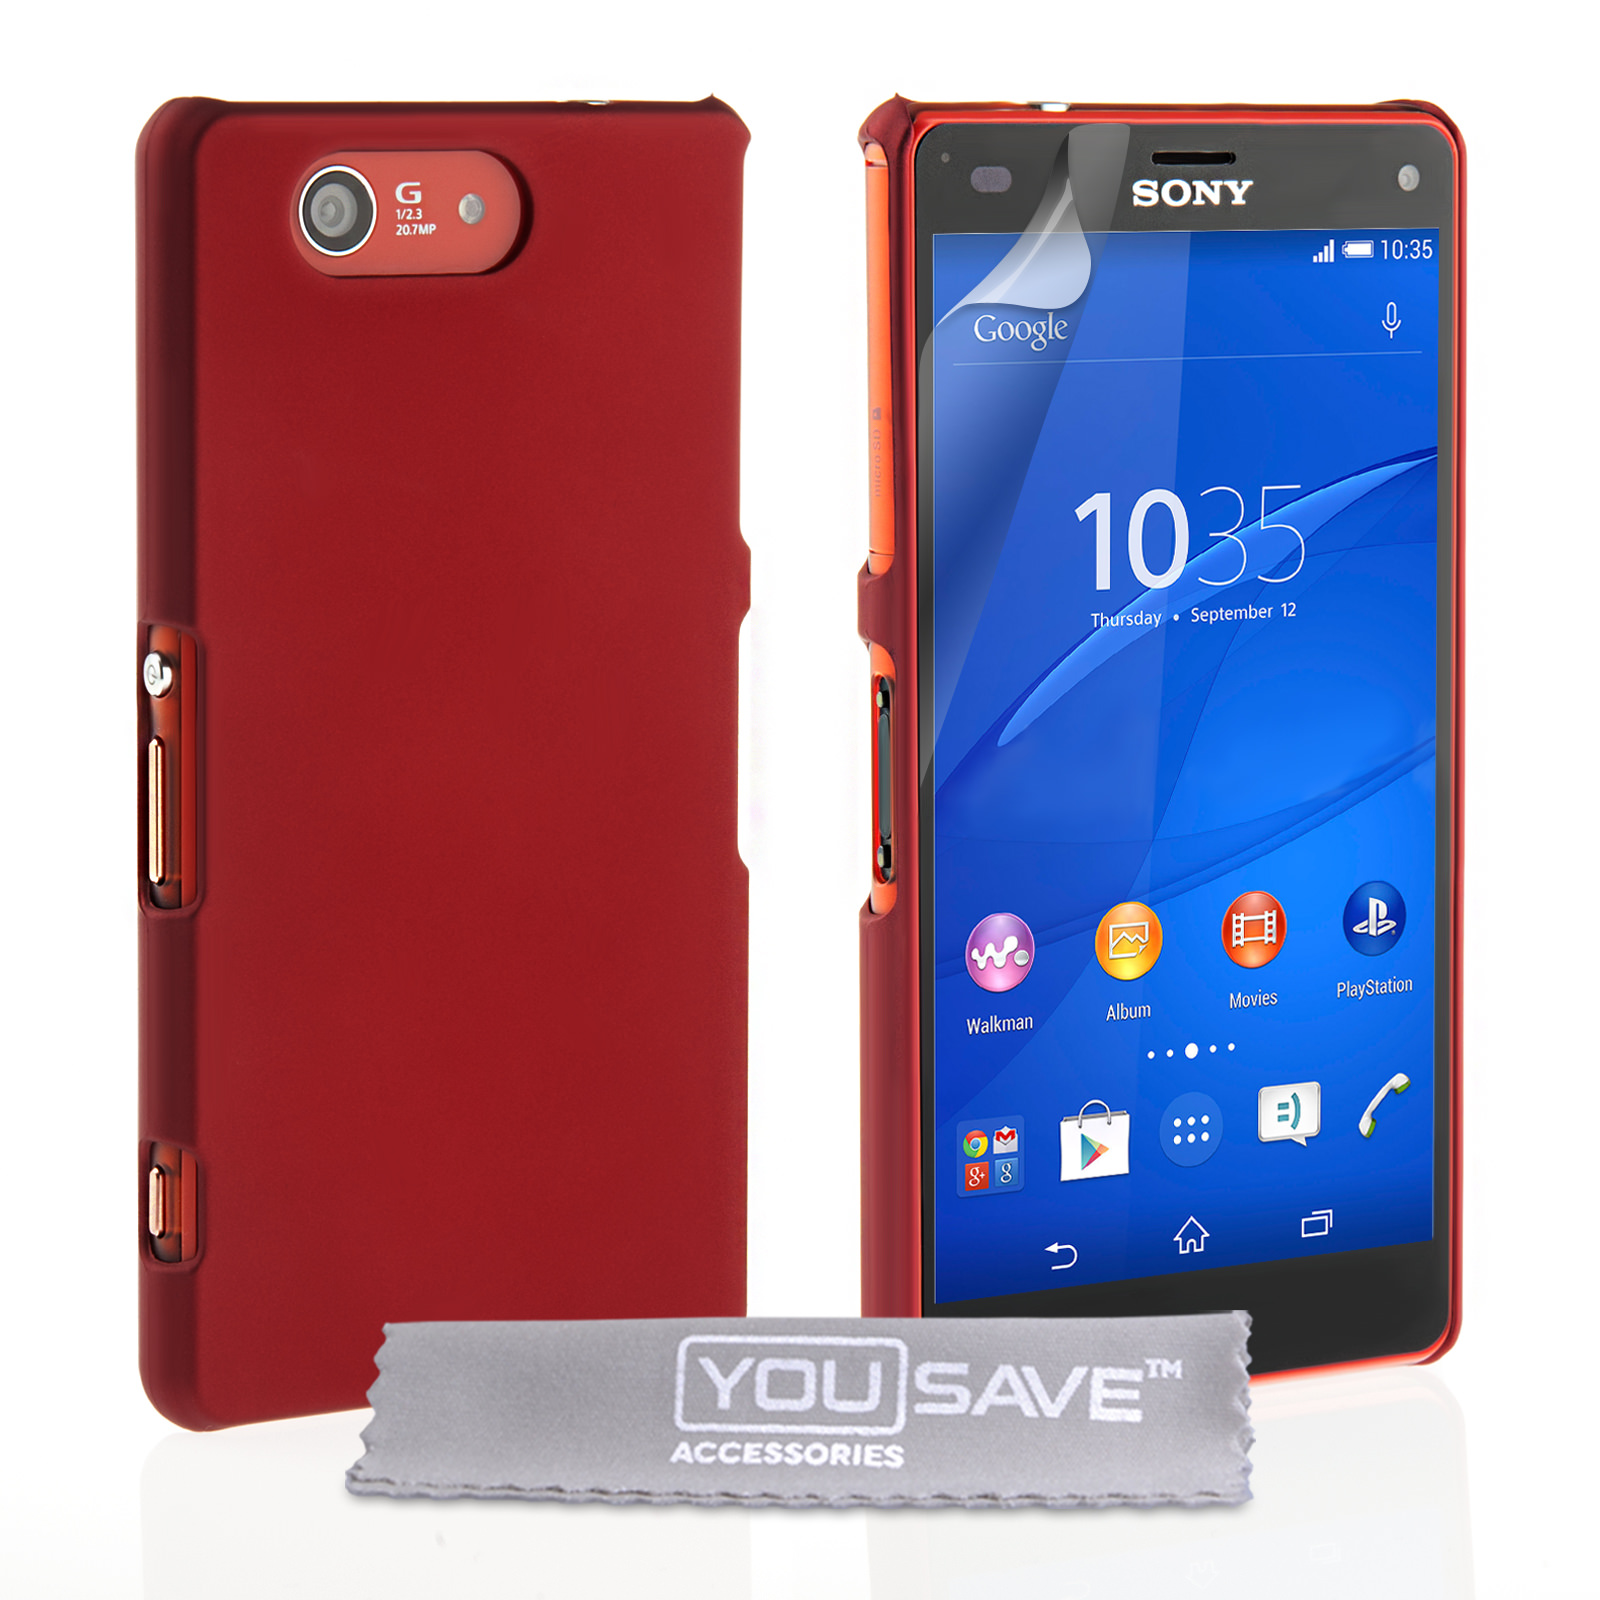 yousave accessories sony xperia z3 compact hard hybrid. Black Bedroom Furniture Sets. Home Design Ideas